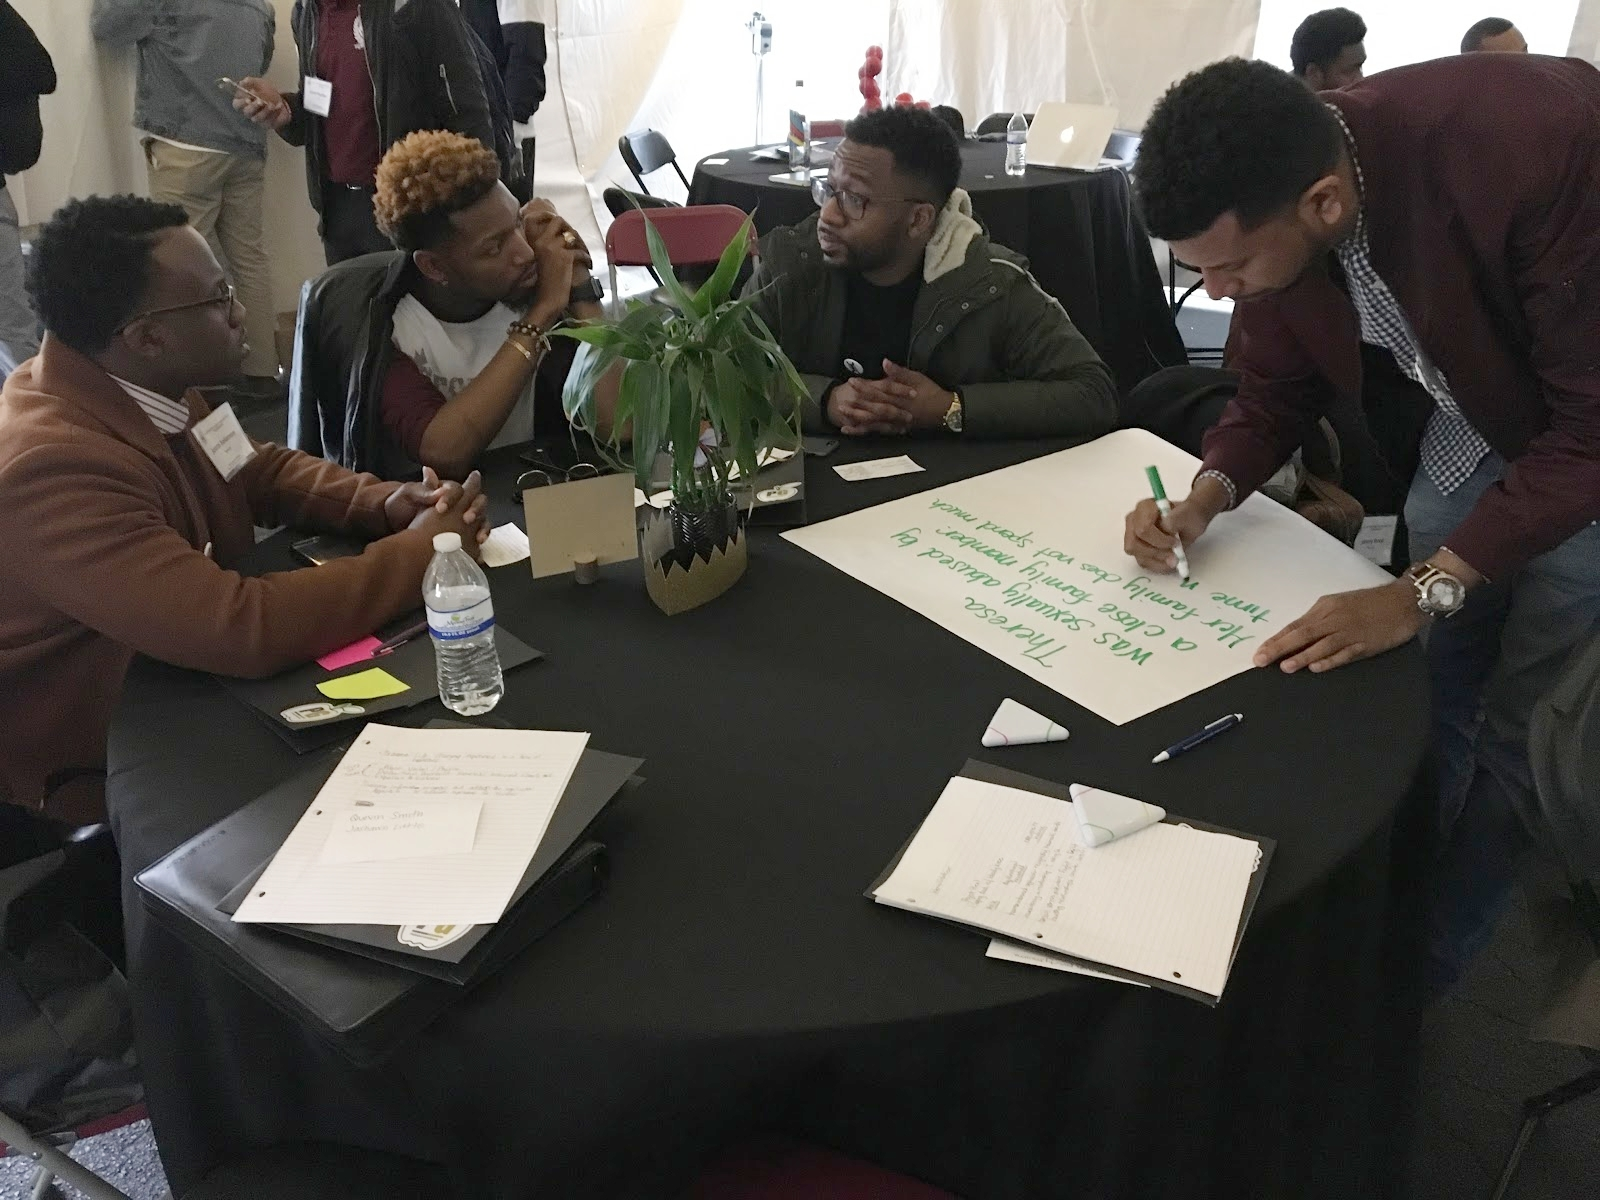 Charlotte, North Carolina - (Profound Gentlemen's Annual Community Impact Assembly)23, Black Male Educators, Administrators, Entrepreneurs and Equity Advocates Engaged in a Trauma-Informed Professional Development Session Centered Upon Identifying Student Behaviors Associated with Traumatic Experiences alongside Participating in Scenarios that Demonstrated How Trauma Impacts a Student's Ability to Learn.